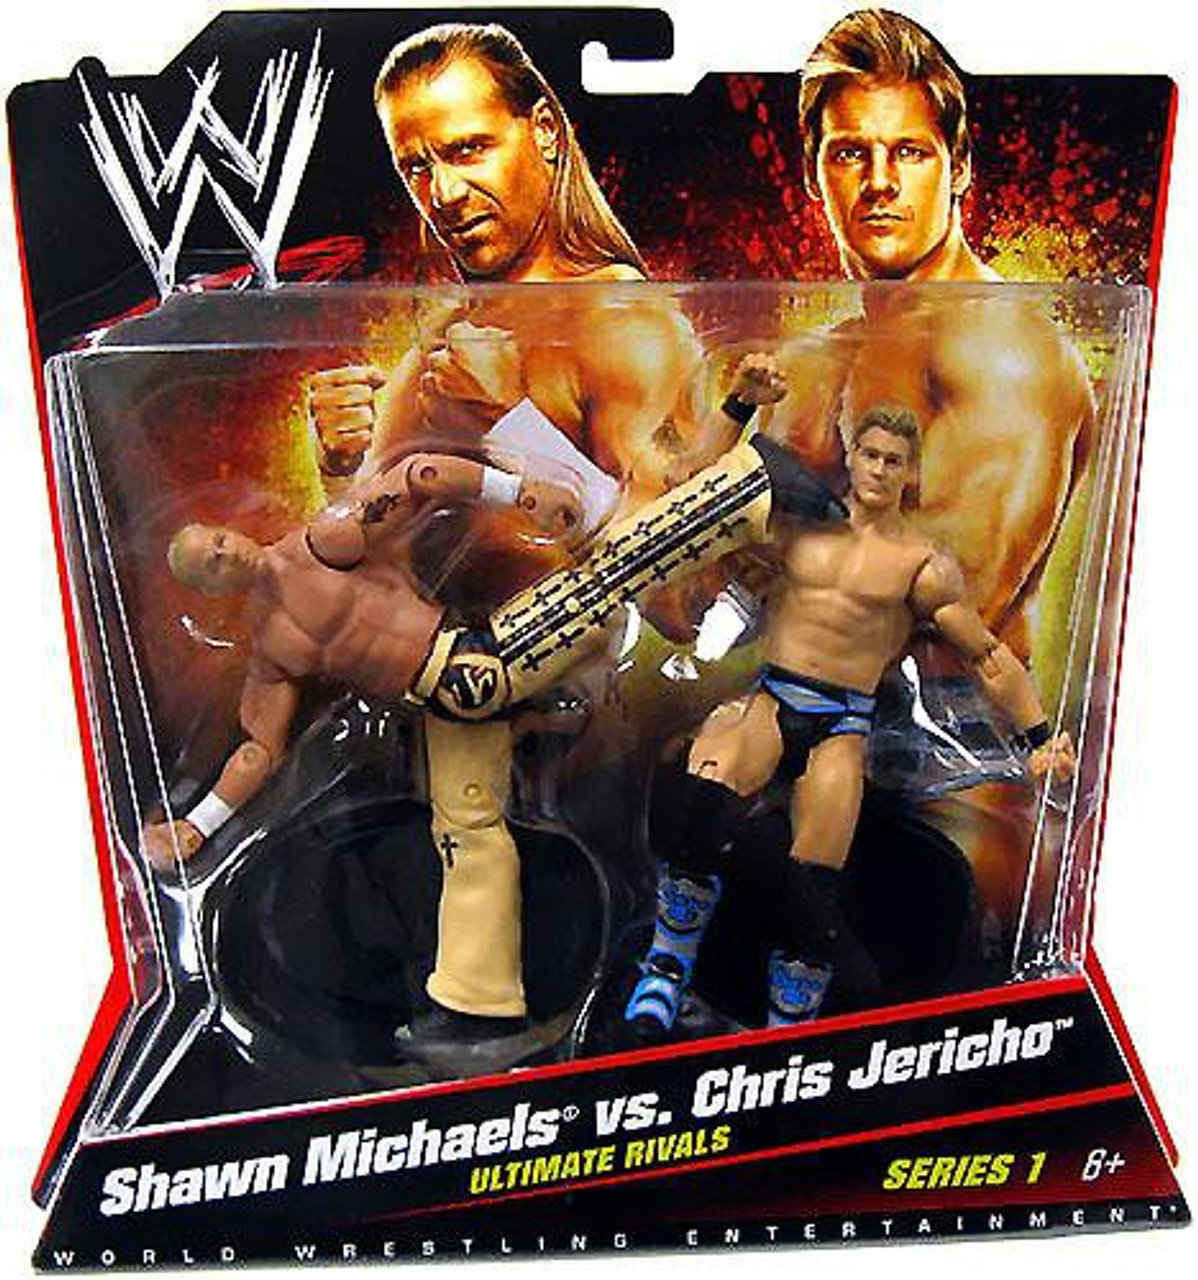 WWE Wrestling Shawn Michaels vs. Chris Jericho Action Figure 2-Pack